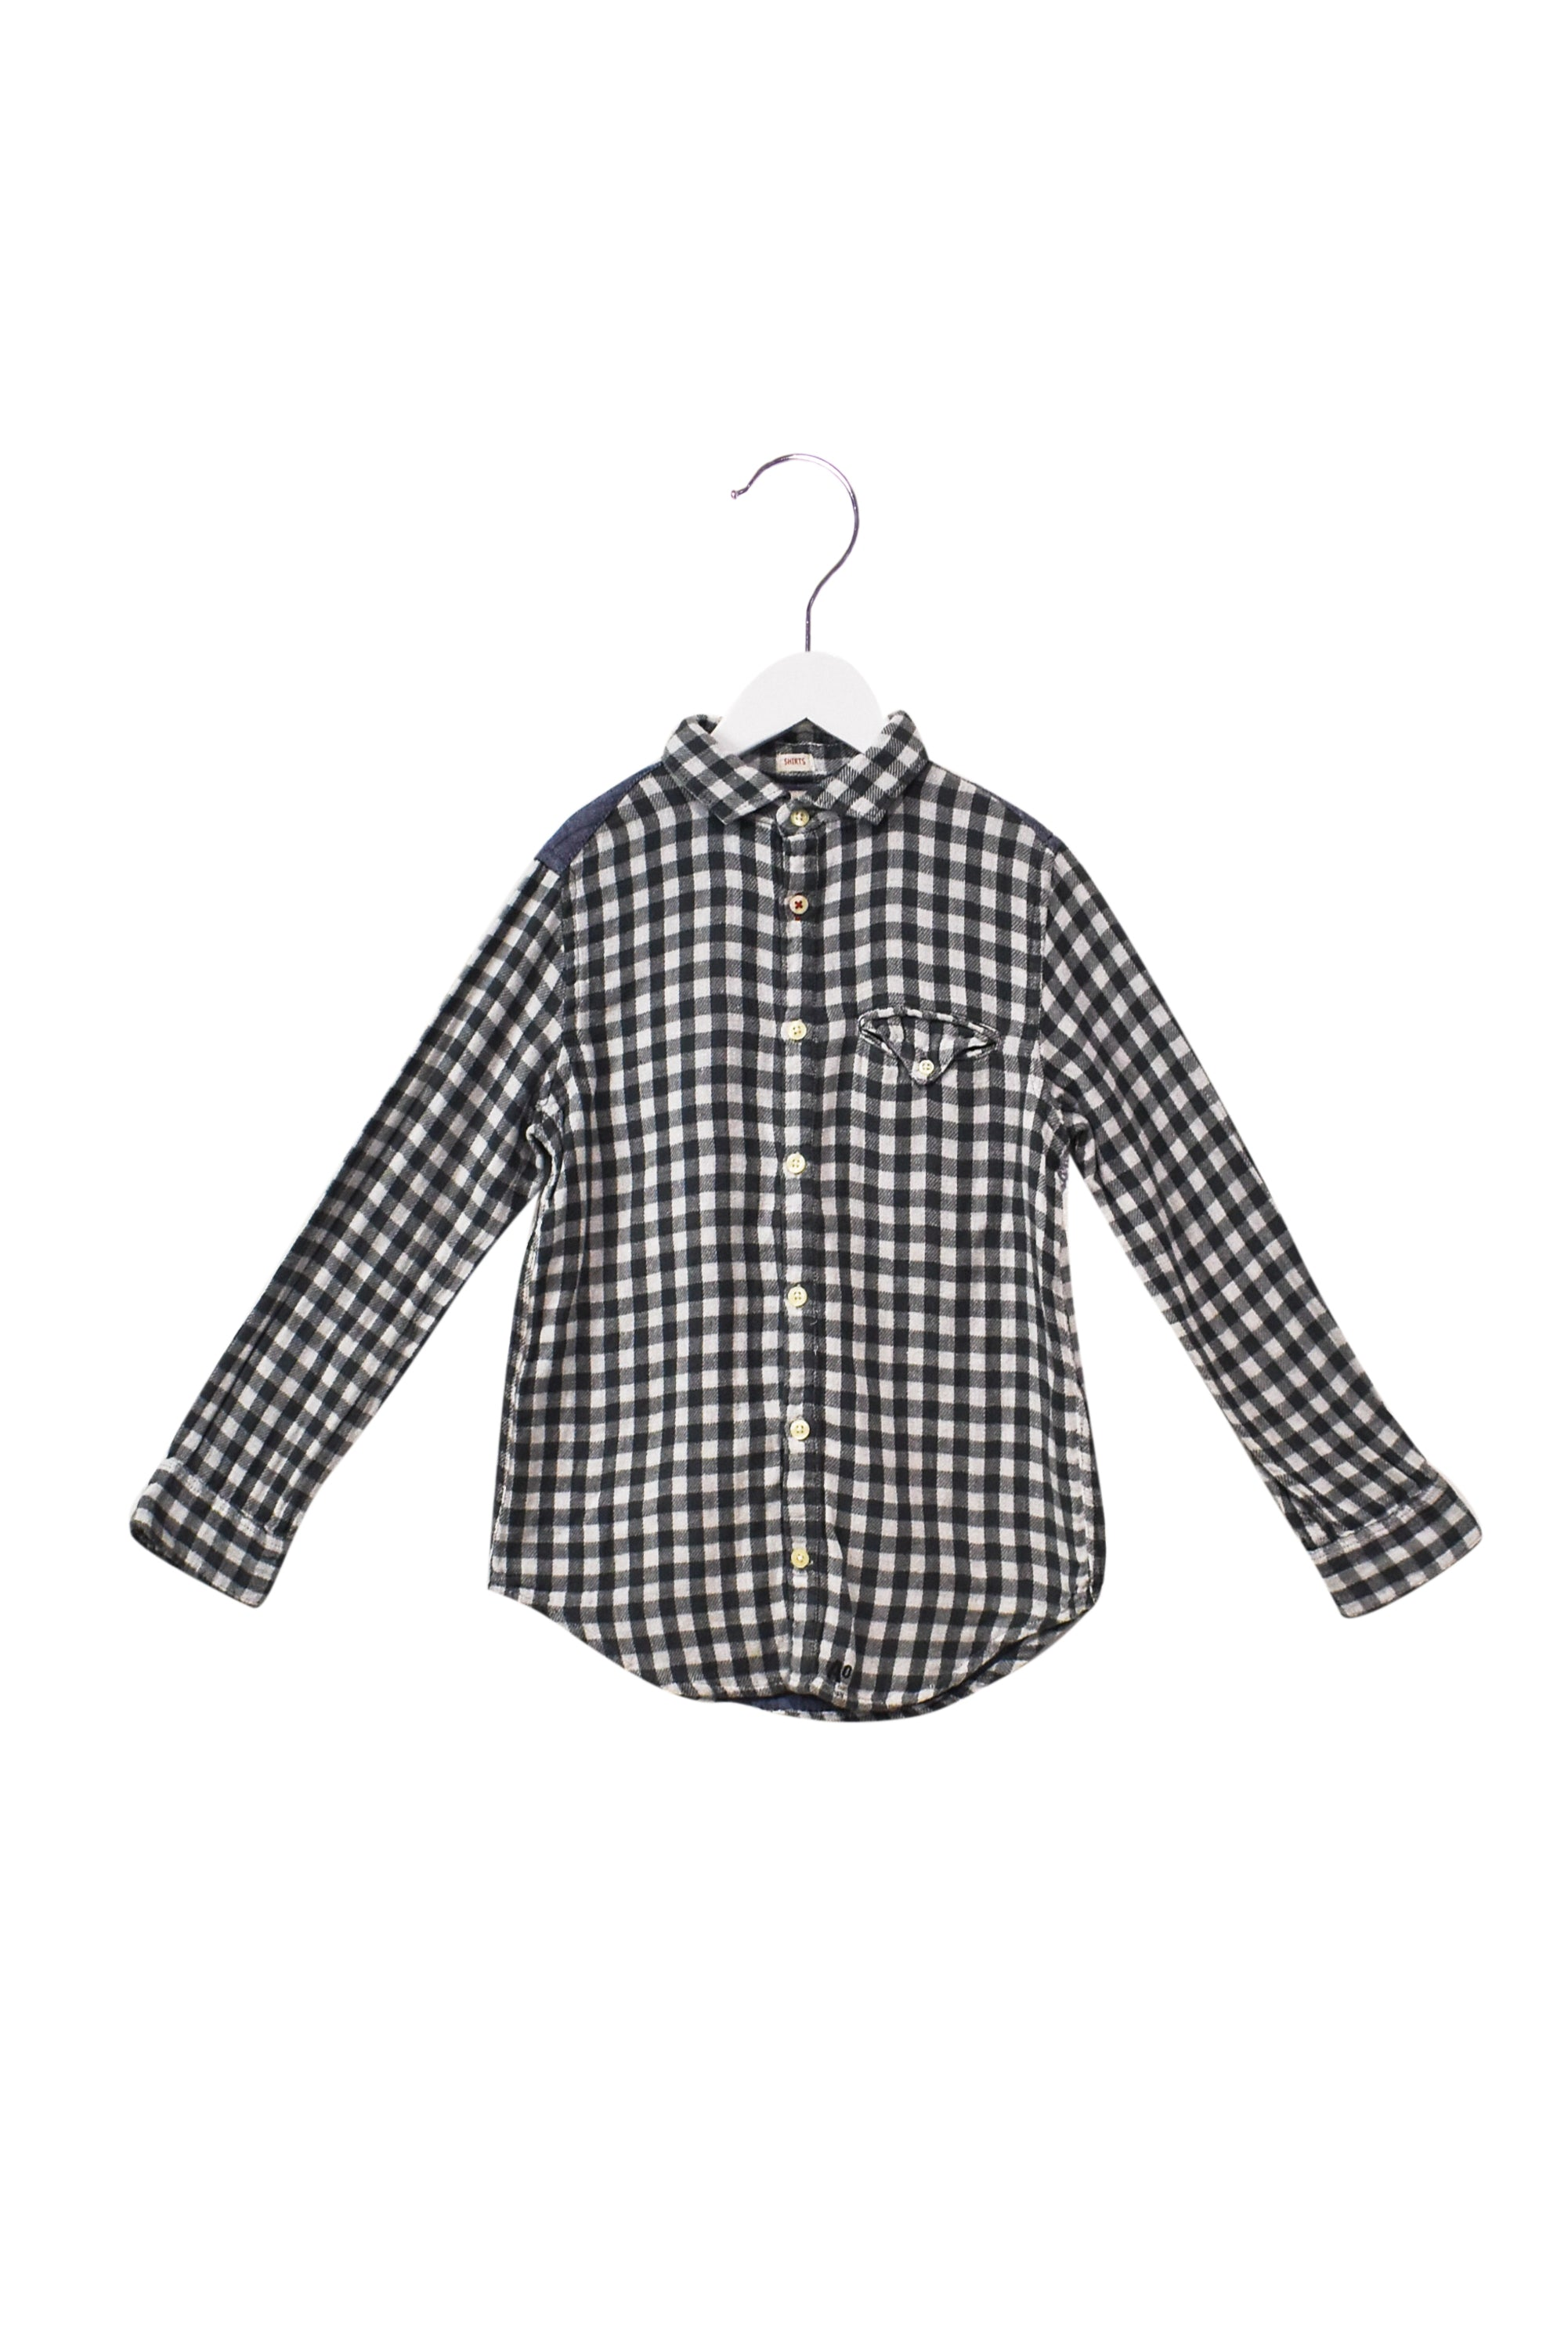 10025981 American Outfitters Kids~Shirt 10 at Retykle